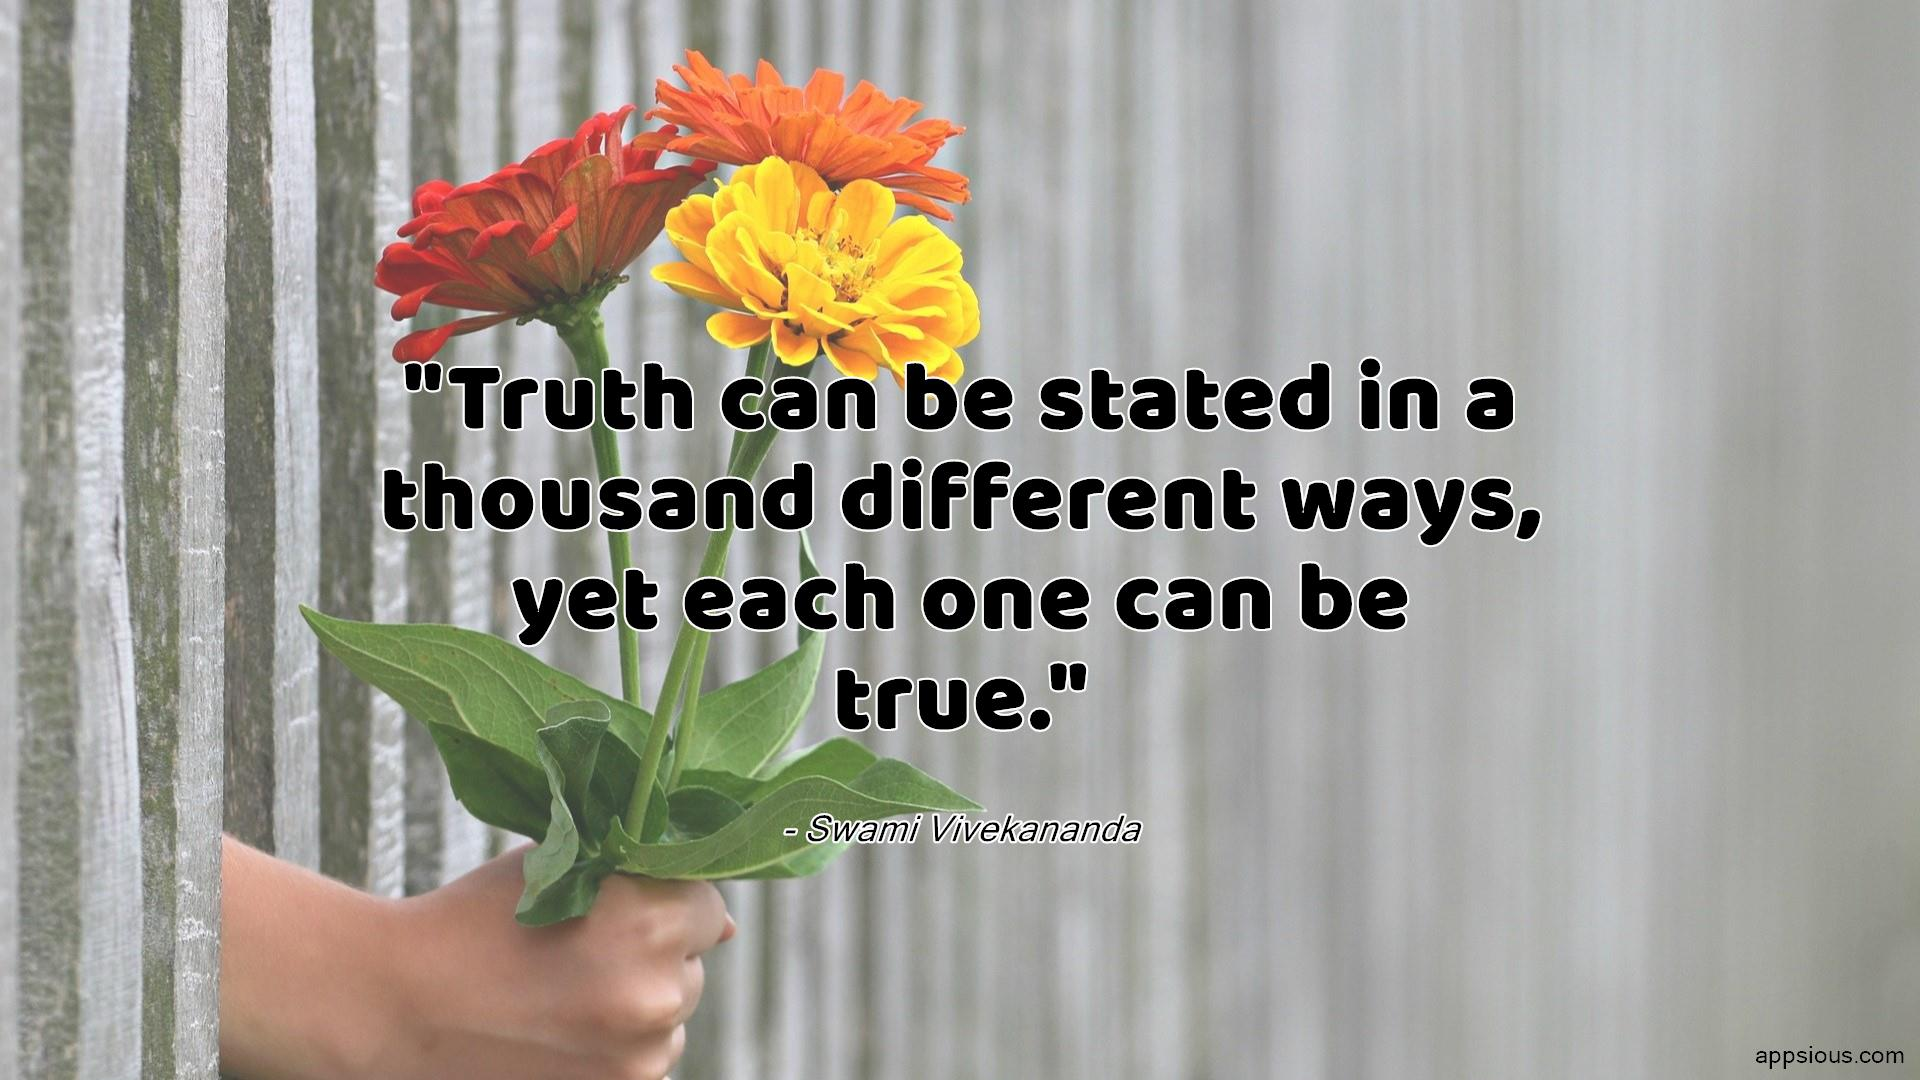 Truth can be stated in a thousand different ways, yet each one can be true.